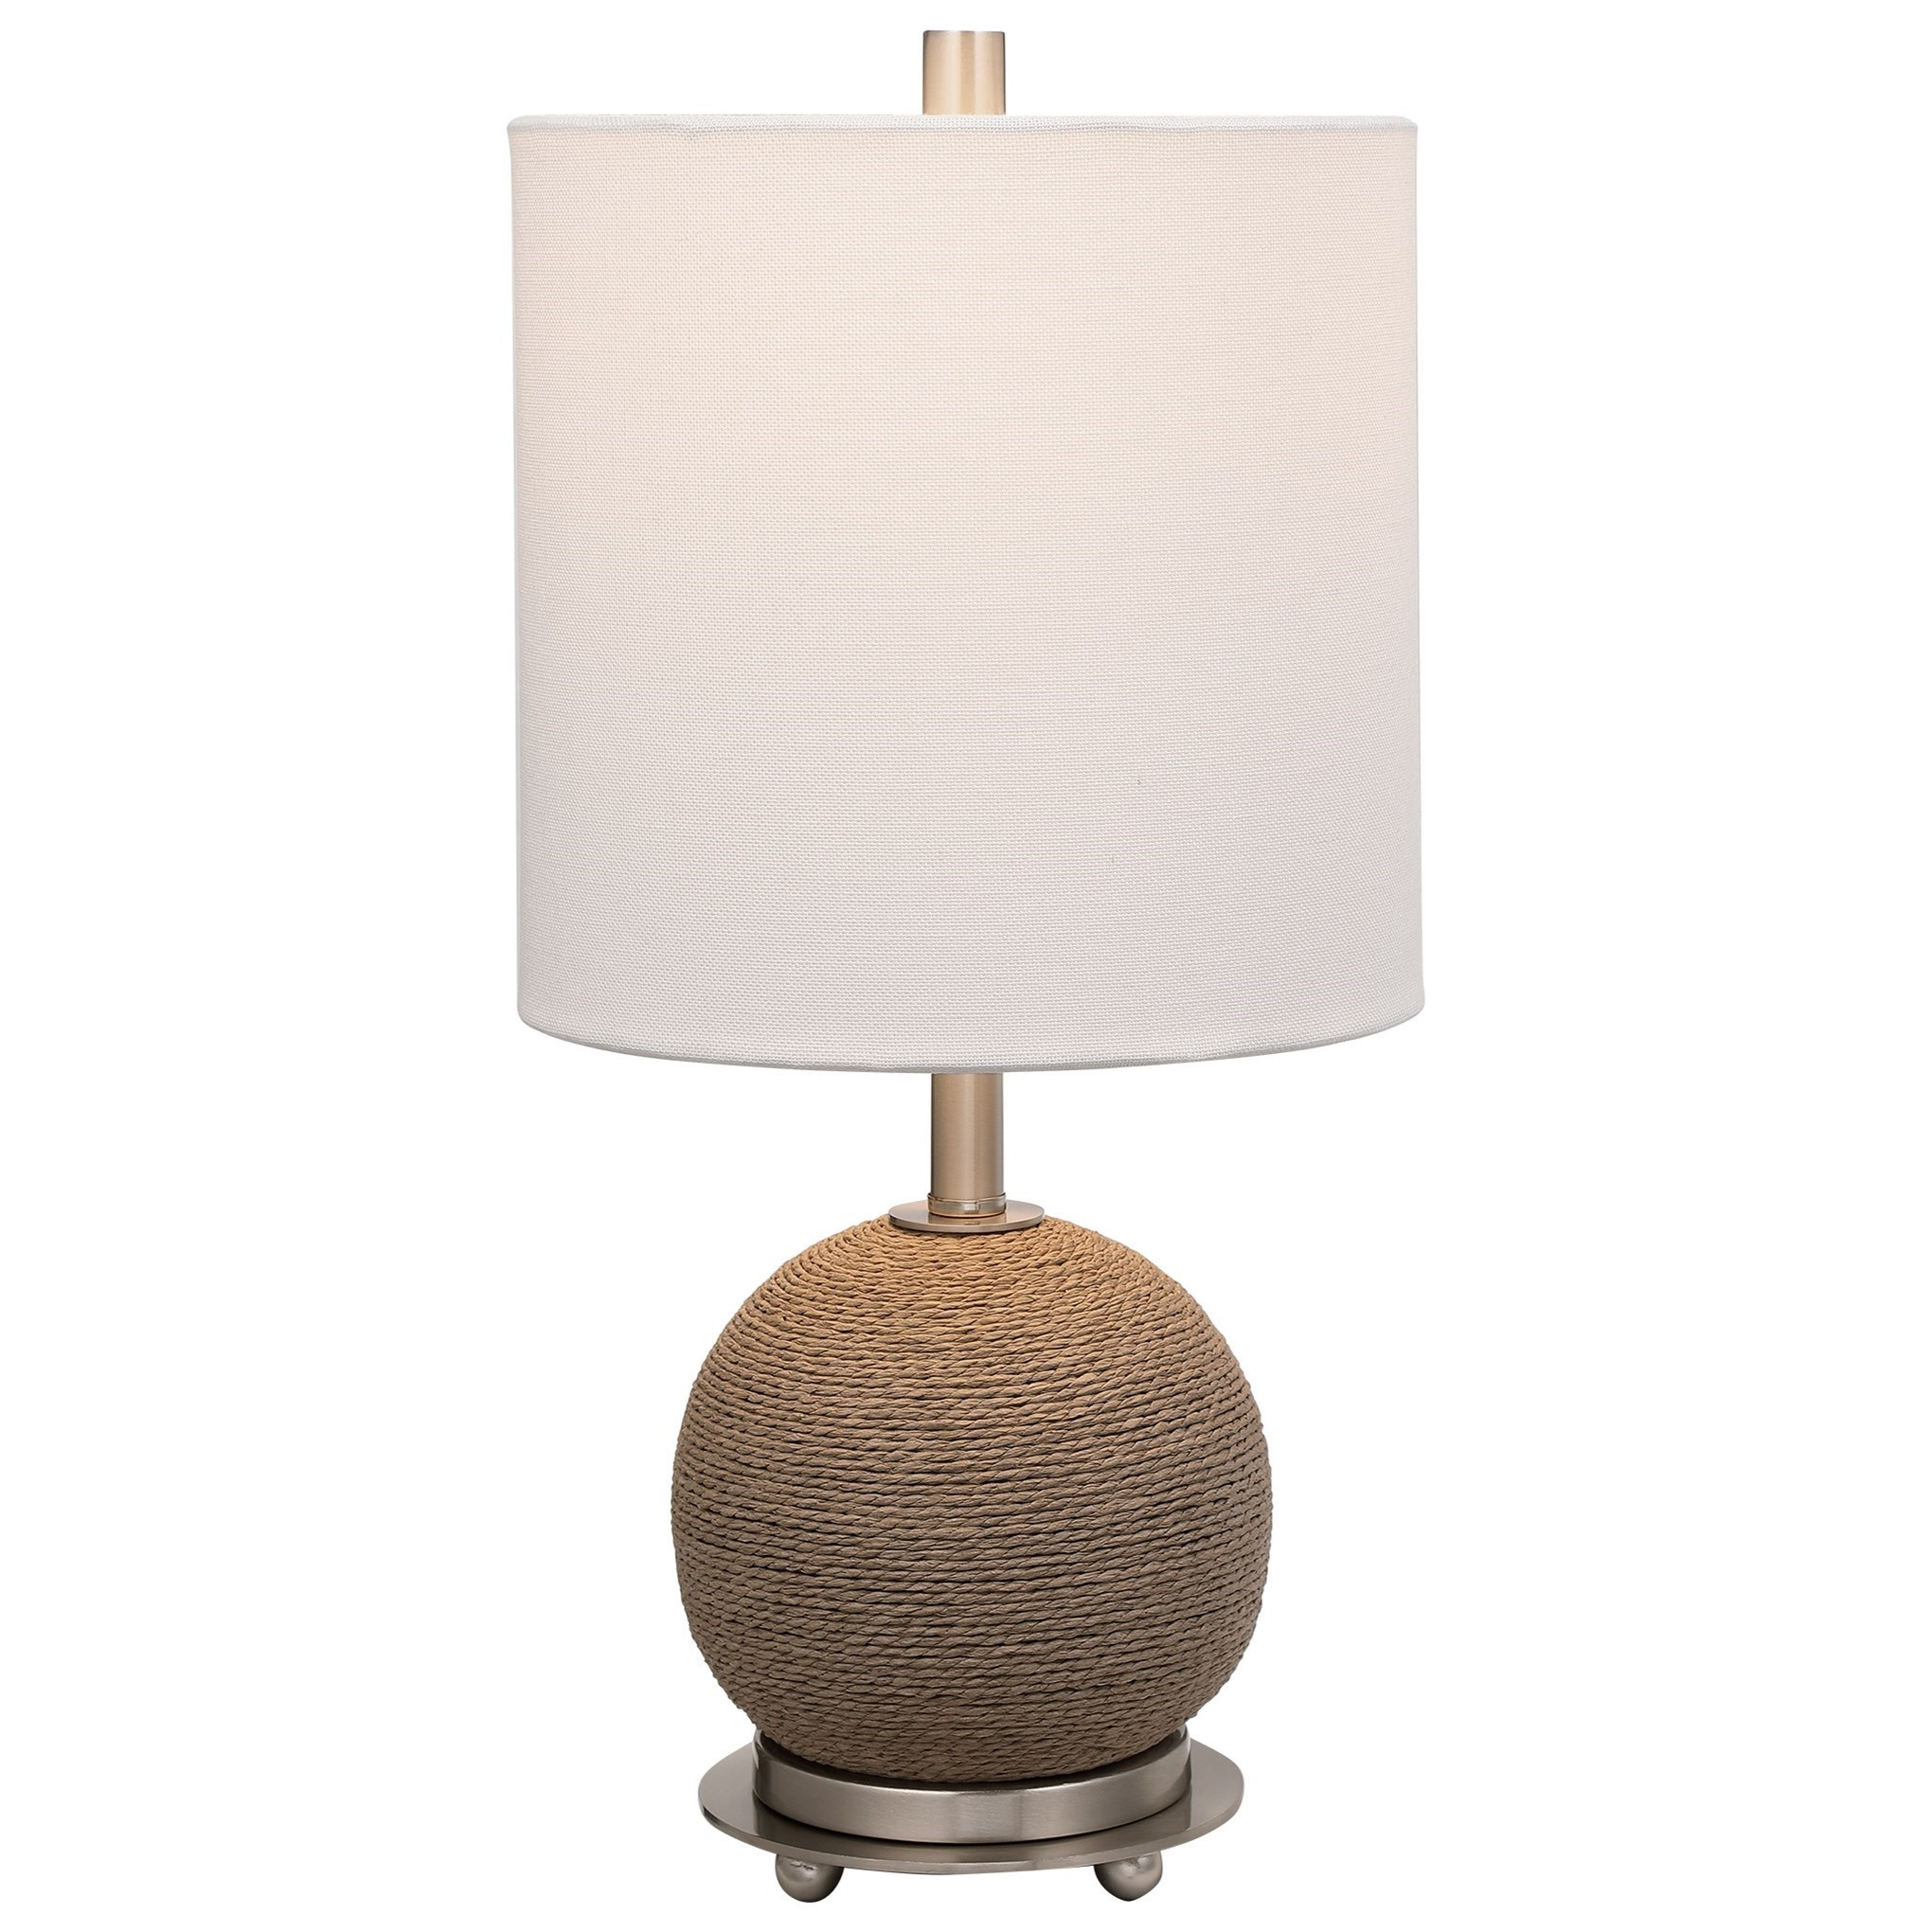 Accent Lamps Captiva Rattan Accent Lamp by Uttermost at Dunk & Bright Furniture